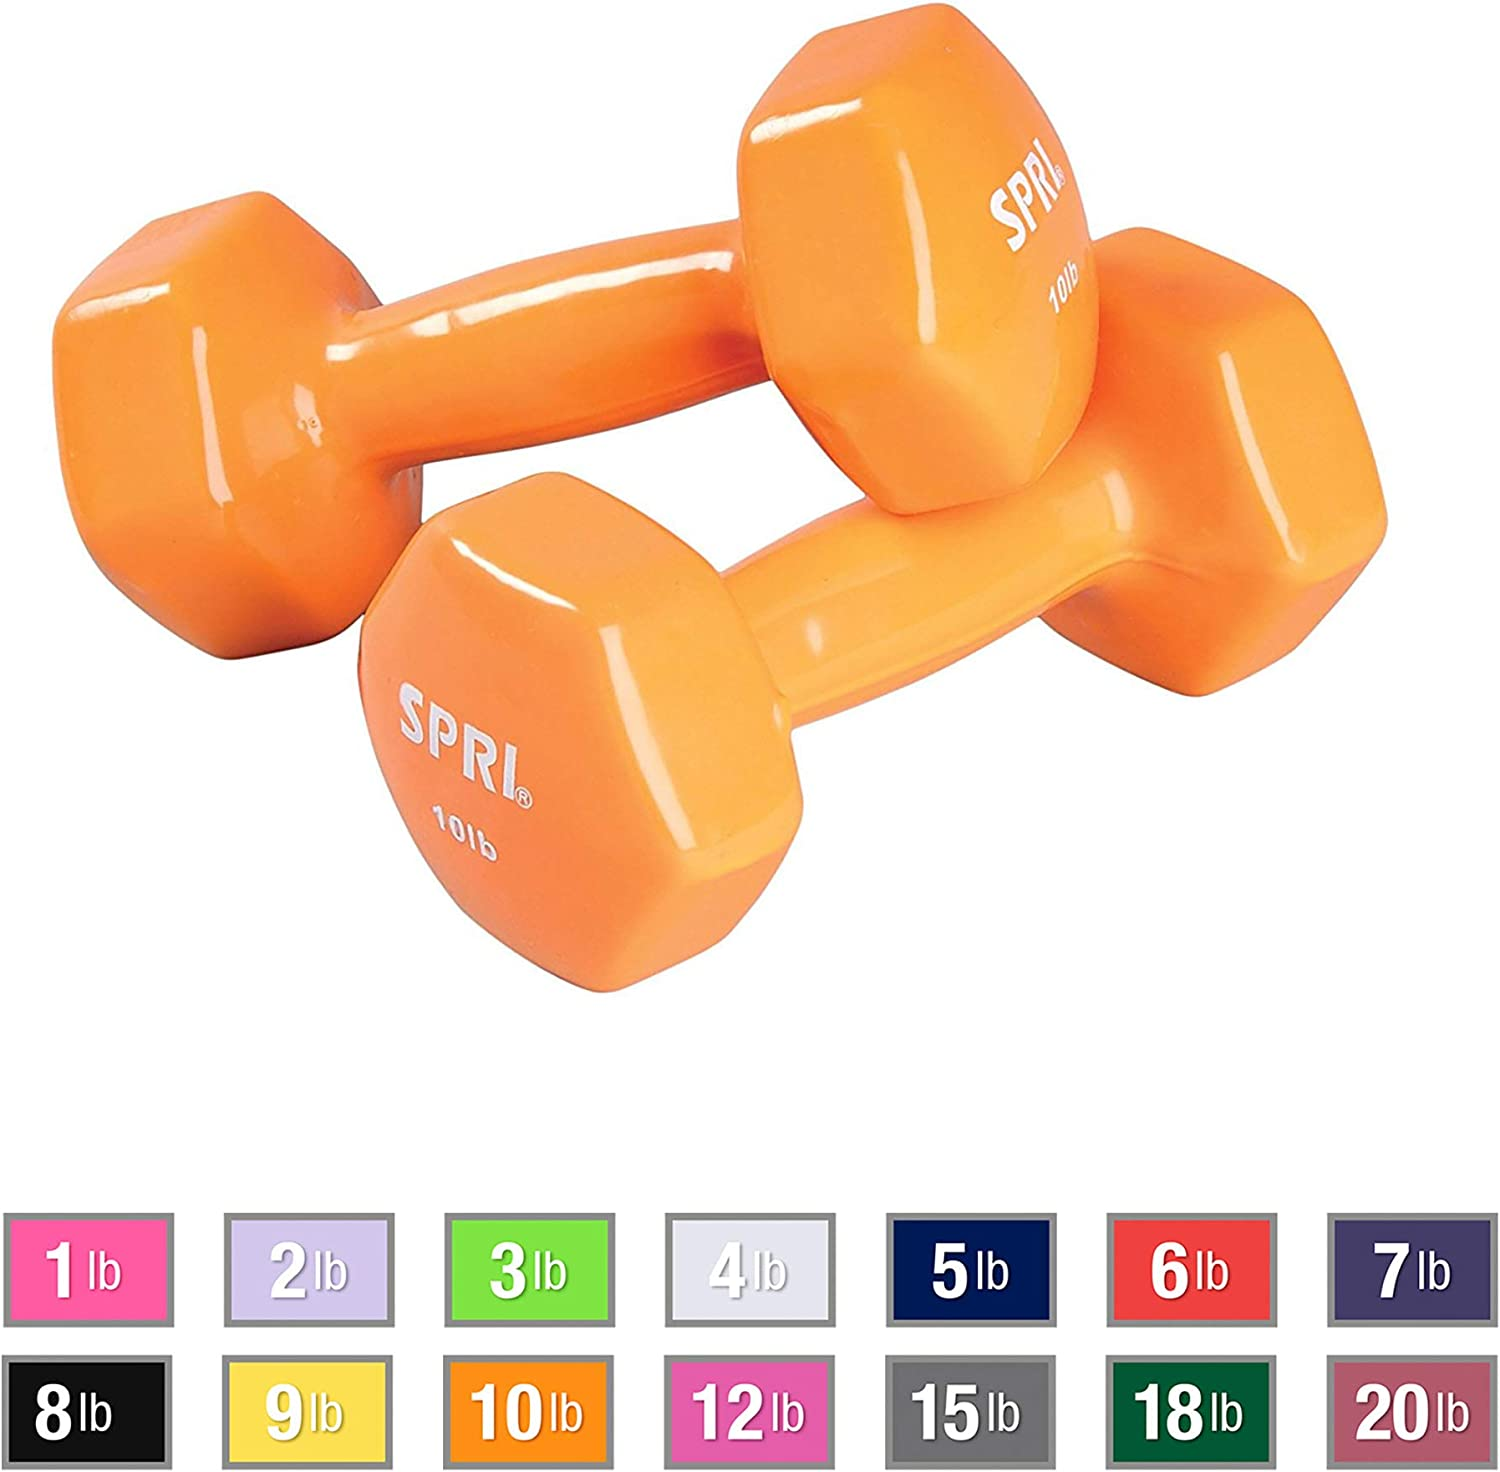 SPRI Dumbbells Deluxe Vinyl Coated Hand Weights All-Purpose Color Coded Dumbbell for Strength Training